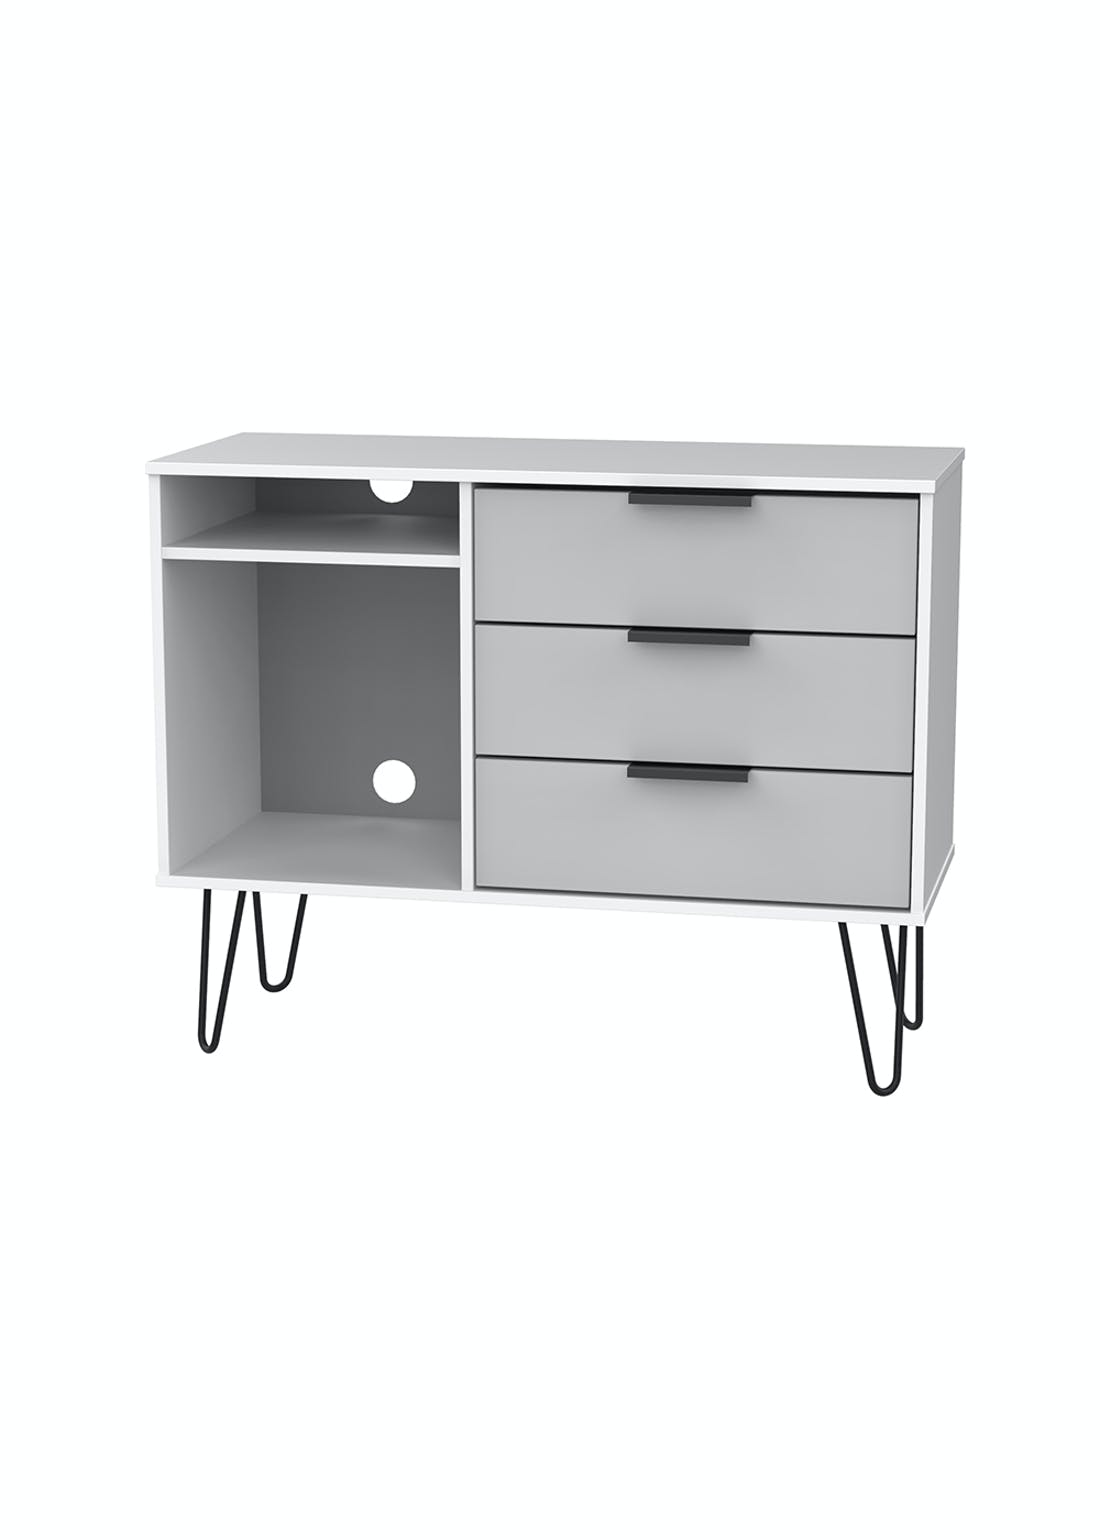 Swift Milano 3 Drawer TV Unit (74cm x 57.5cm x 39.5cm)